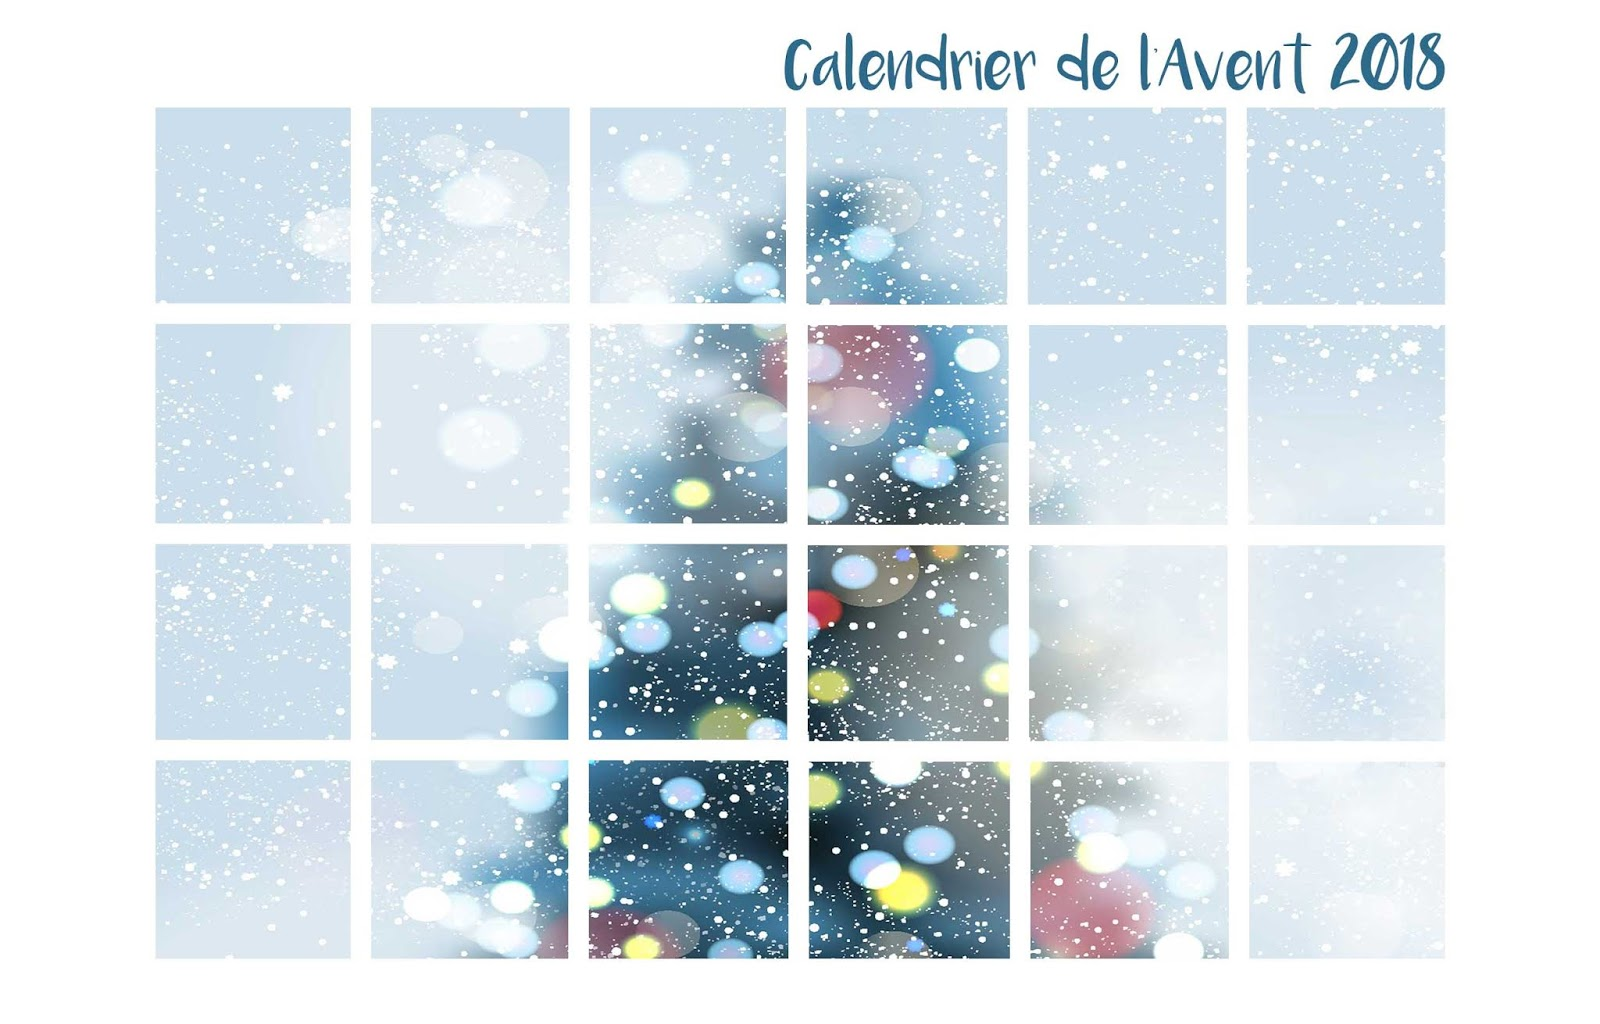 Calendrier de l'avent feel good